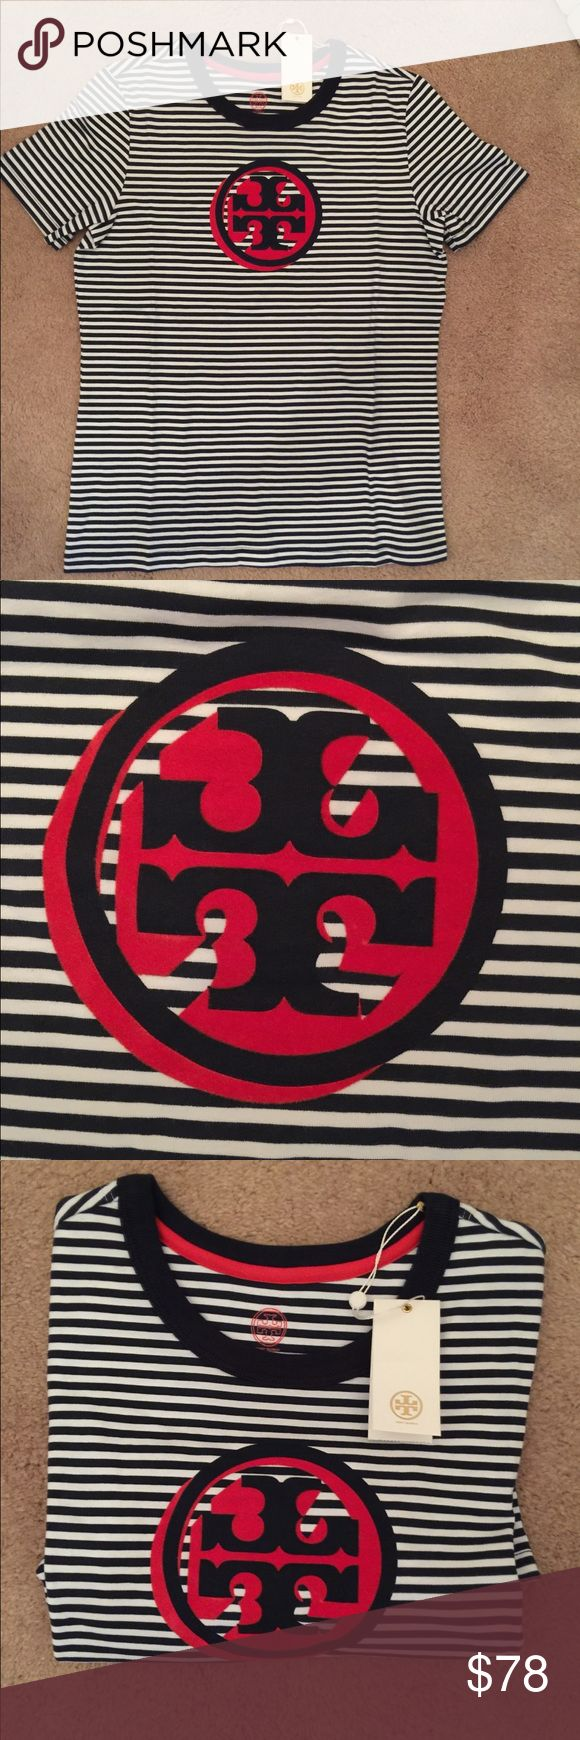 Tory Burch Bria logo cotton tee shirt % authentic Tory Burch Bria logo tee shirt NWT striped cotton tee with contrast trim crew neck short sleeves size medium red white & blue never been worn Tory Burch Tops Tees - Short Sleeve